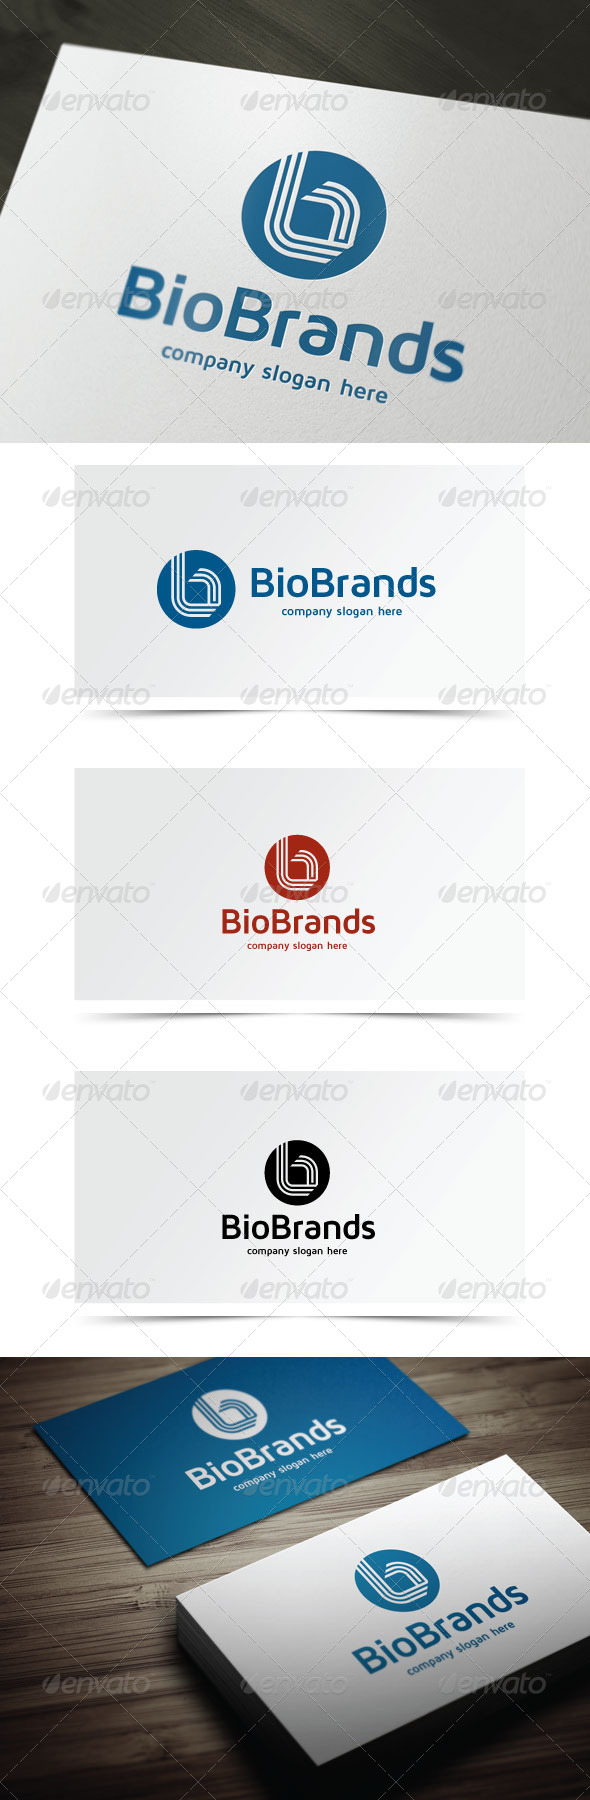 GraphicRiver Bio Brands 5853701